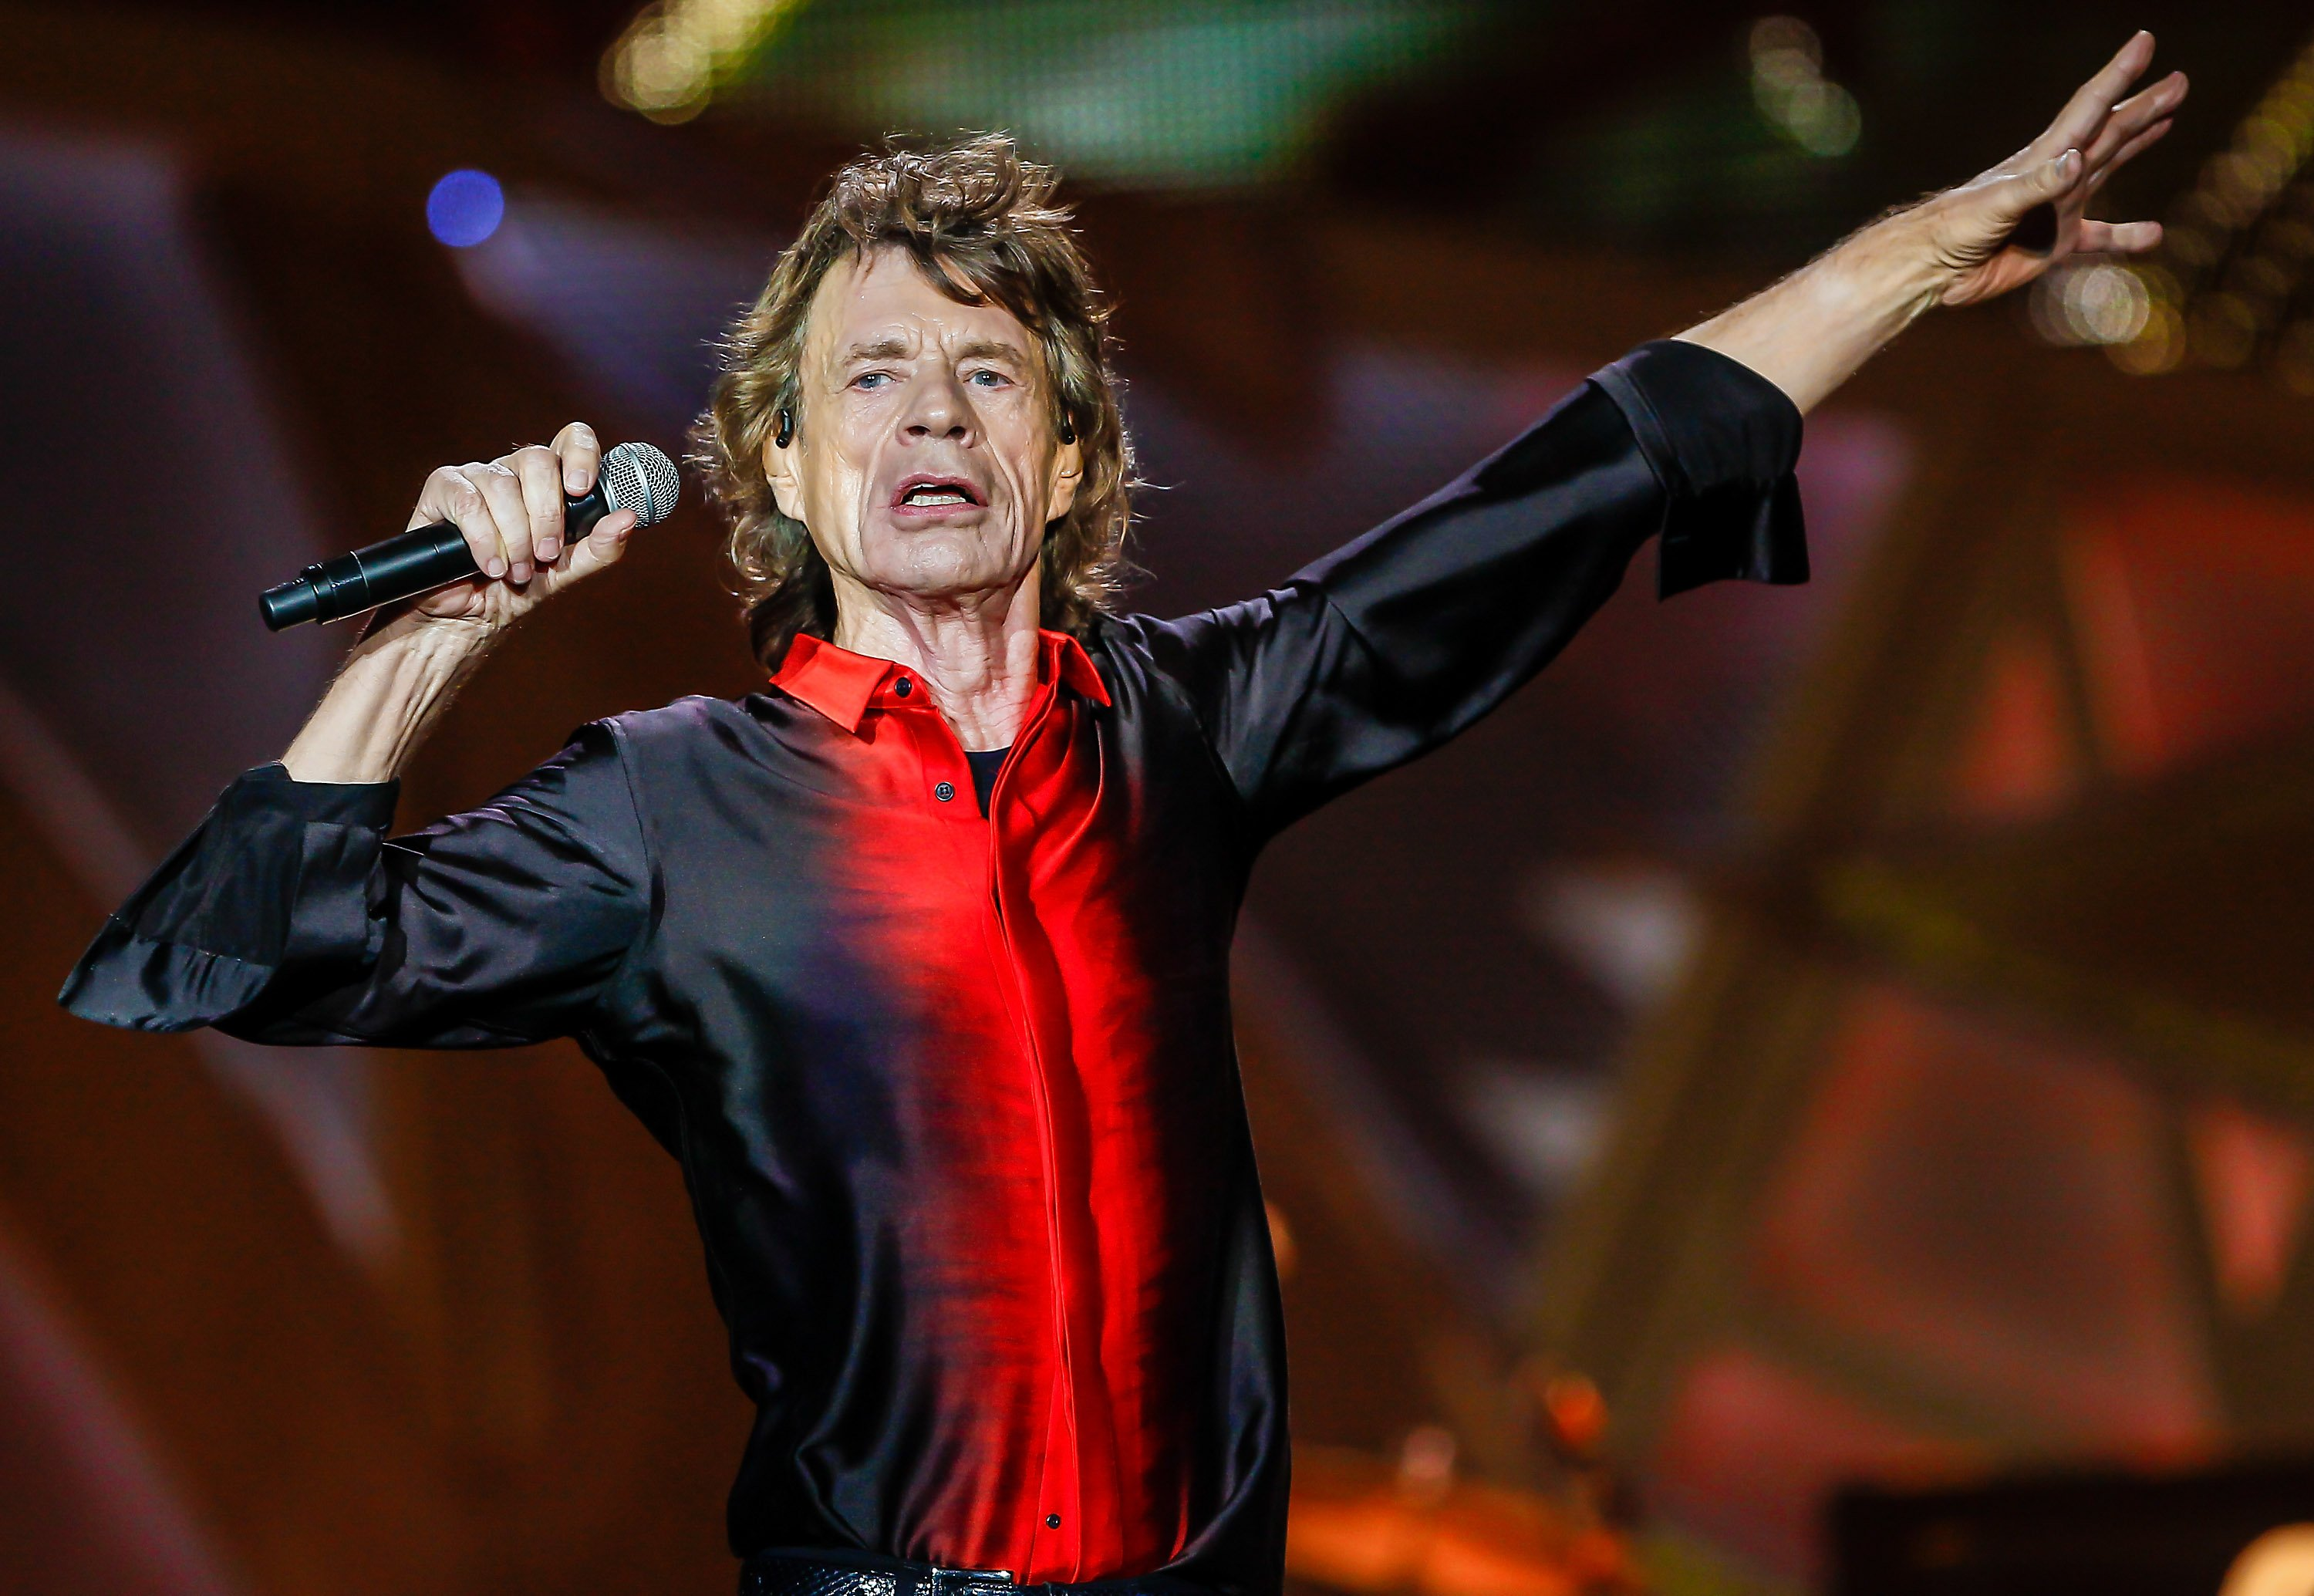 Mick Jagger of the Rolling Stones performs at the Indianapolis Motor Speedway on July 4, 2015, in Indianapolis, Indiana. | Source: Getty Images.